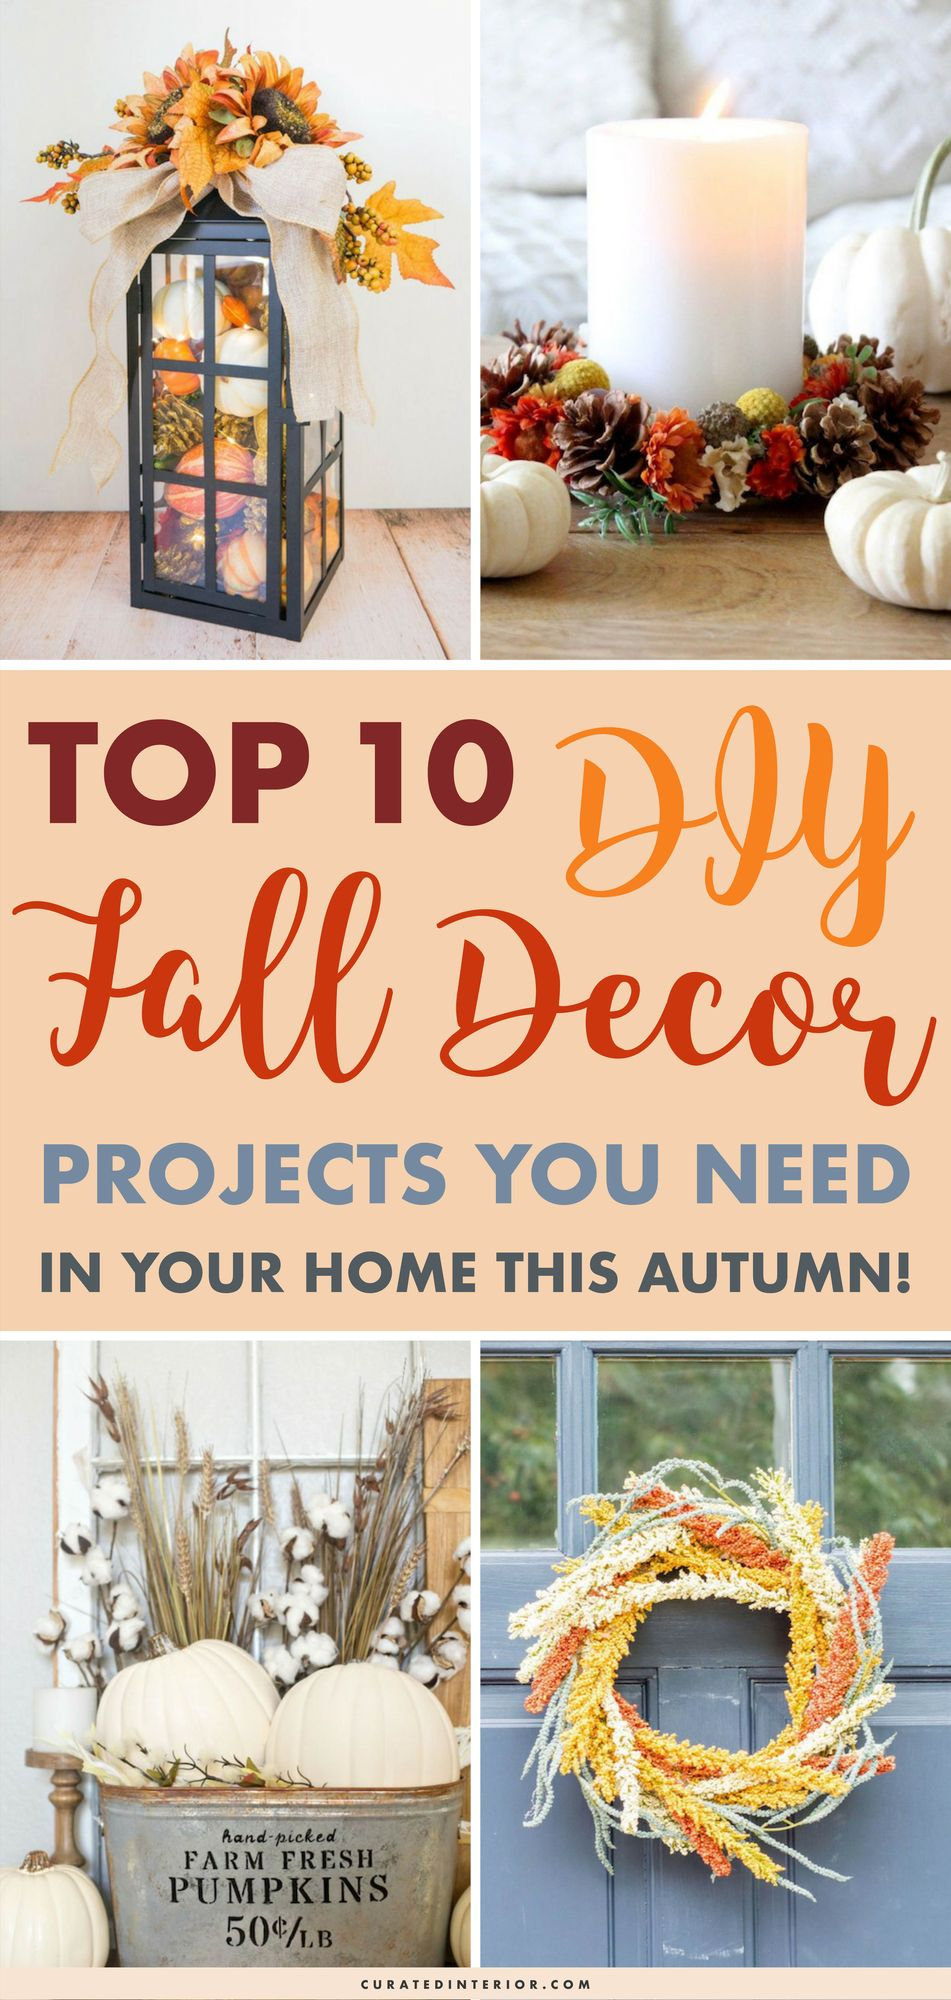 Top 10 DIY Fall Decor Projects for Your Home this Autumn #FallDecor #FallHomeDecor